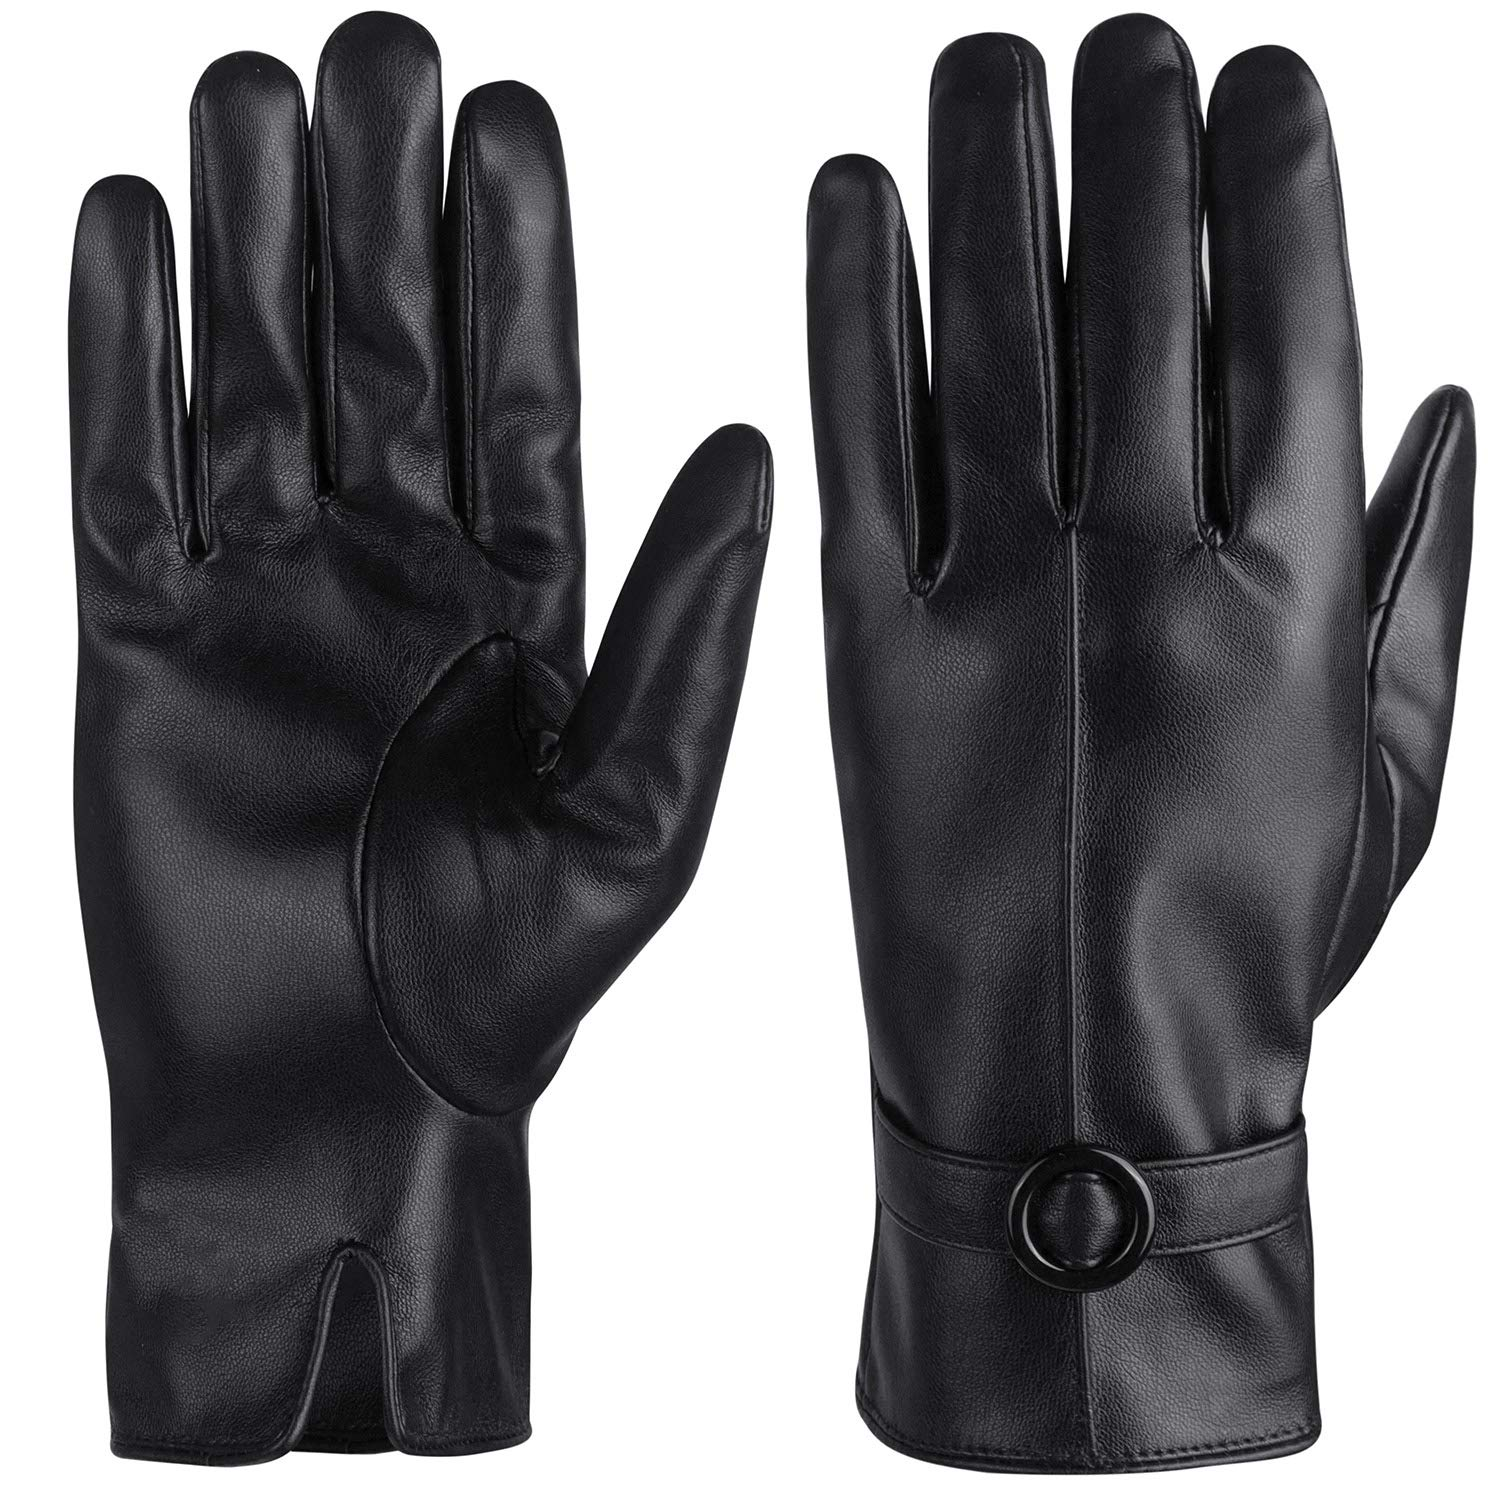 Womens Leather Gloves Winter Touchscreen Texting Driving Fleece Lined Gloves Warm Gifts